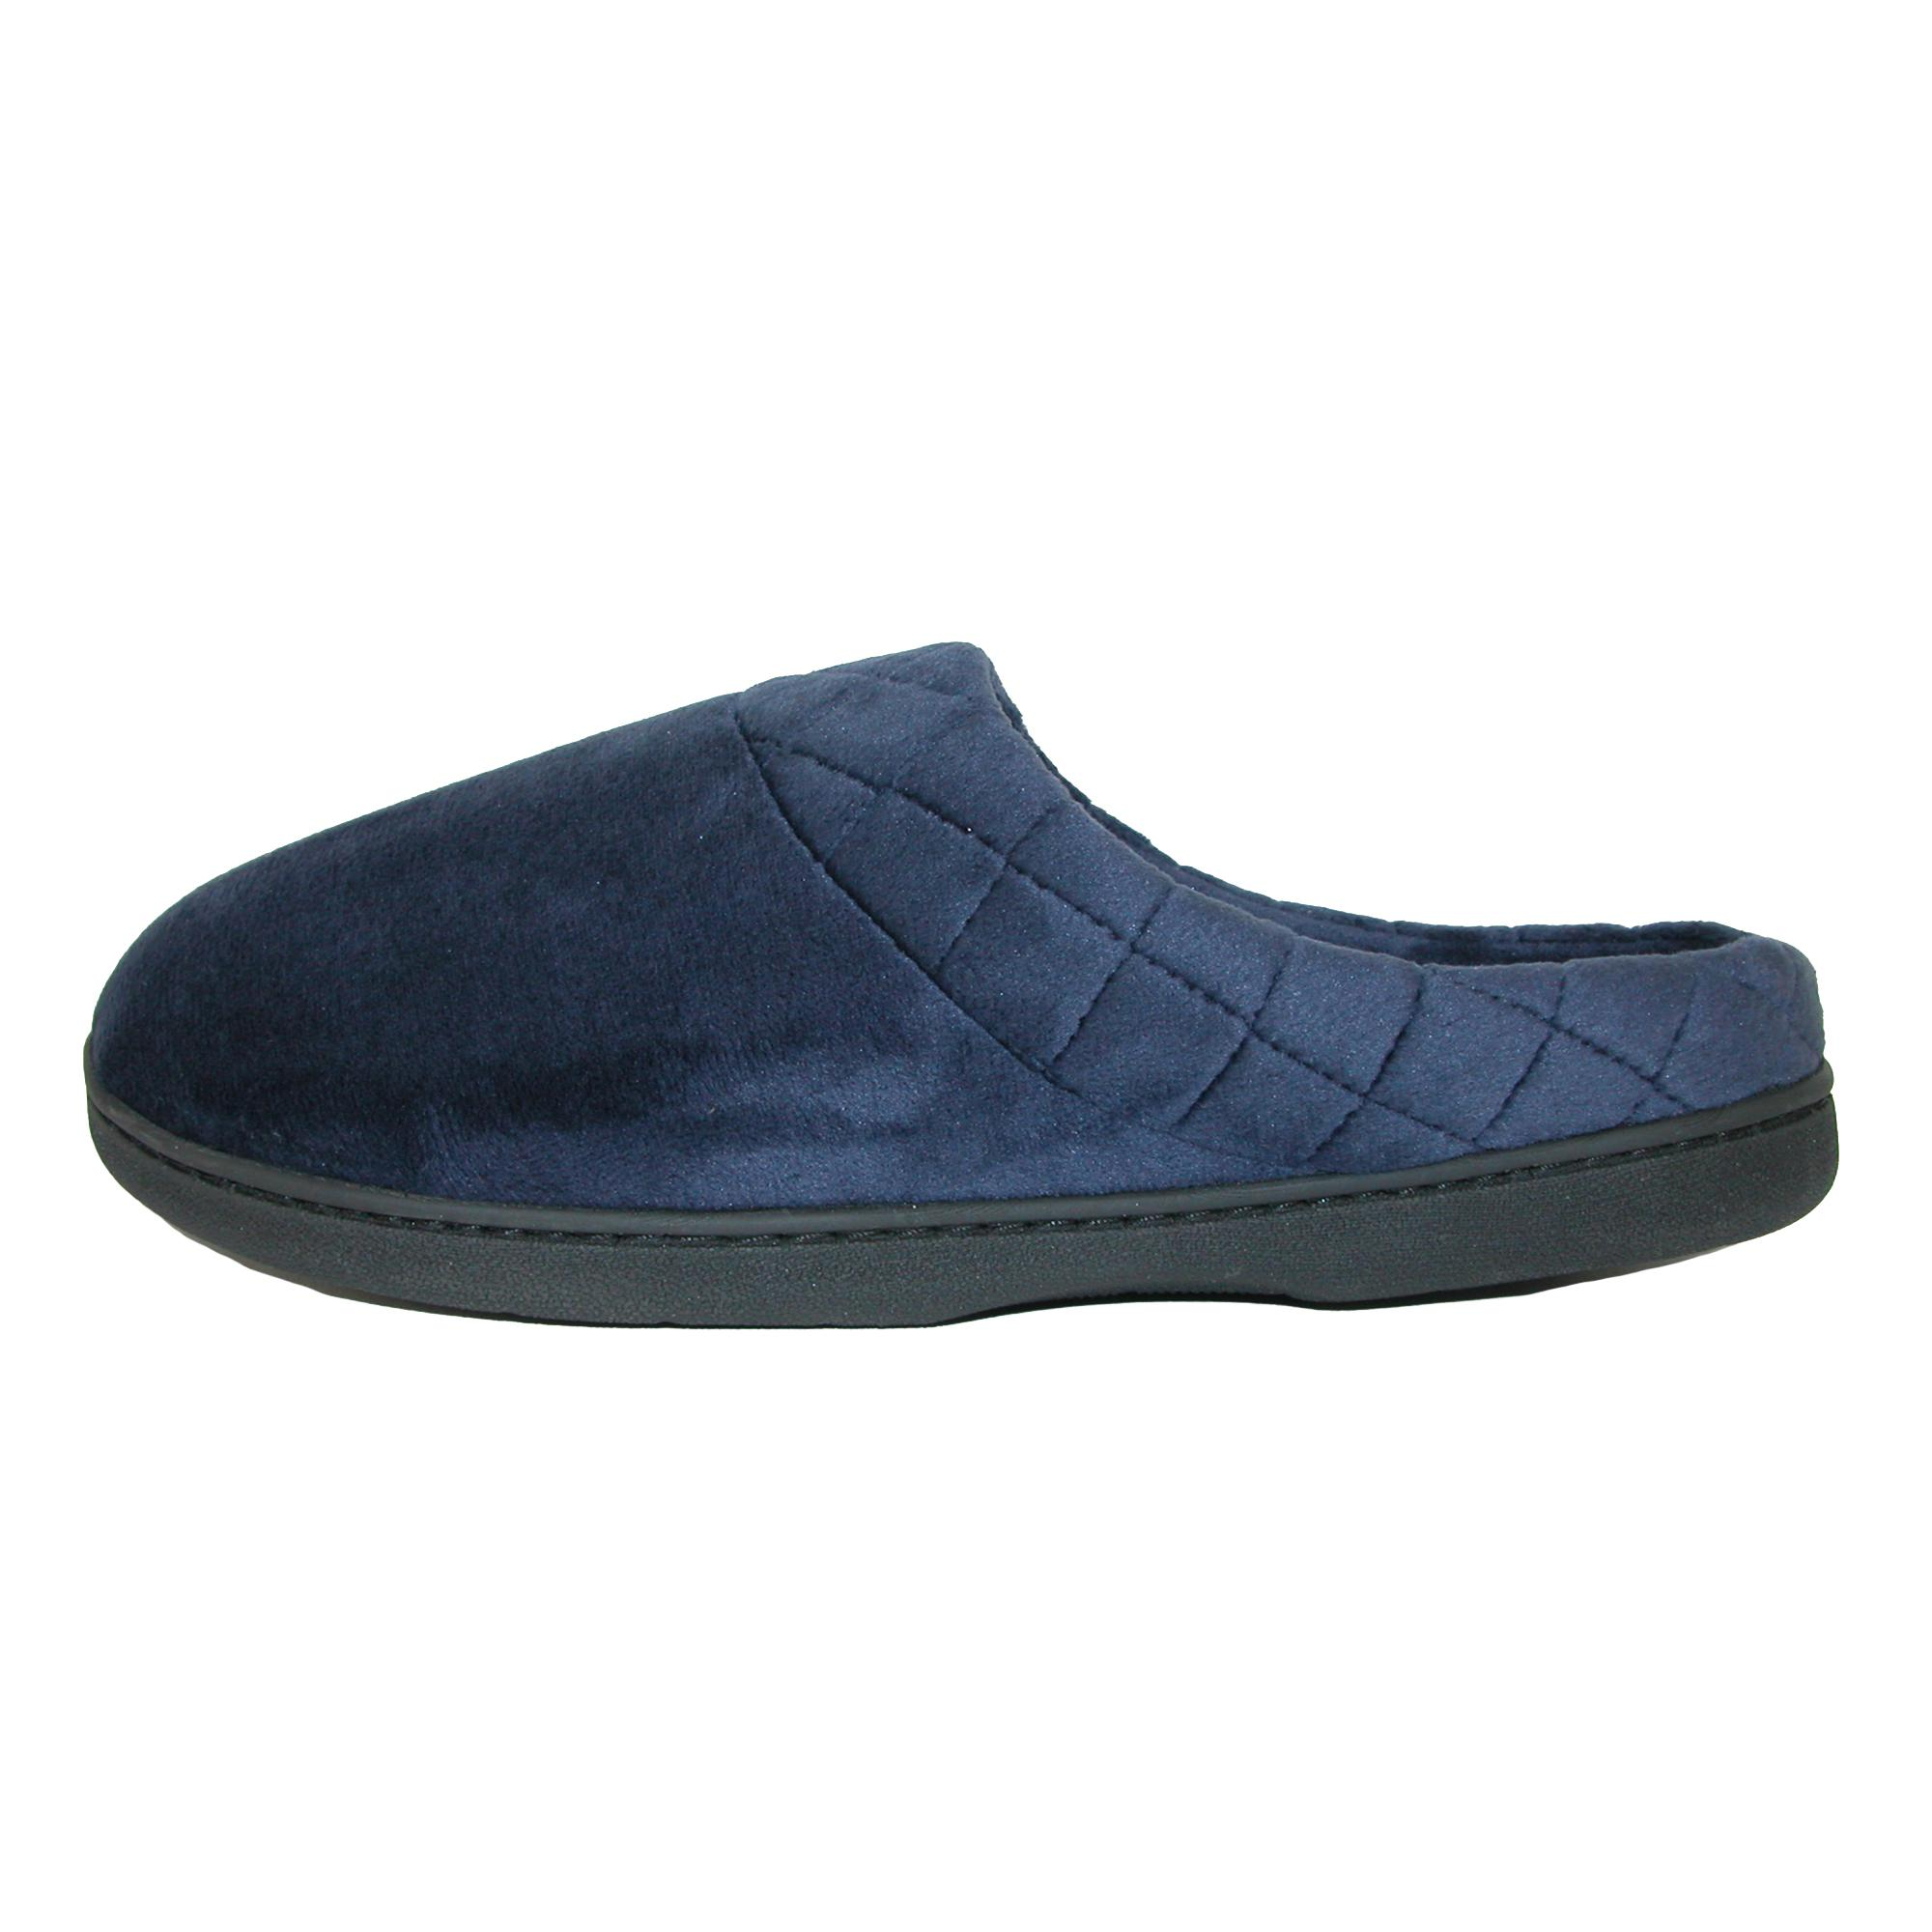 New-Dearfoams-Women-039-s-Microfiber-Velour-Clog-Slipper-with-Quilt-Detail thumbnail 10